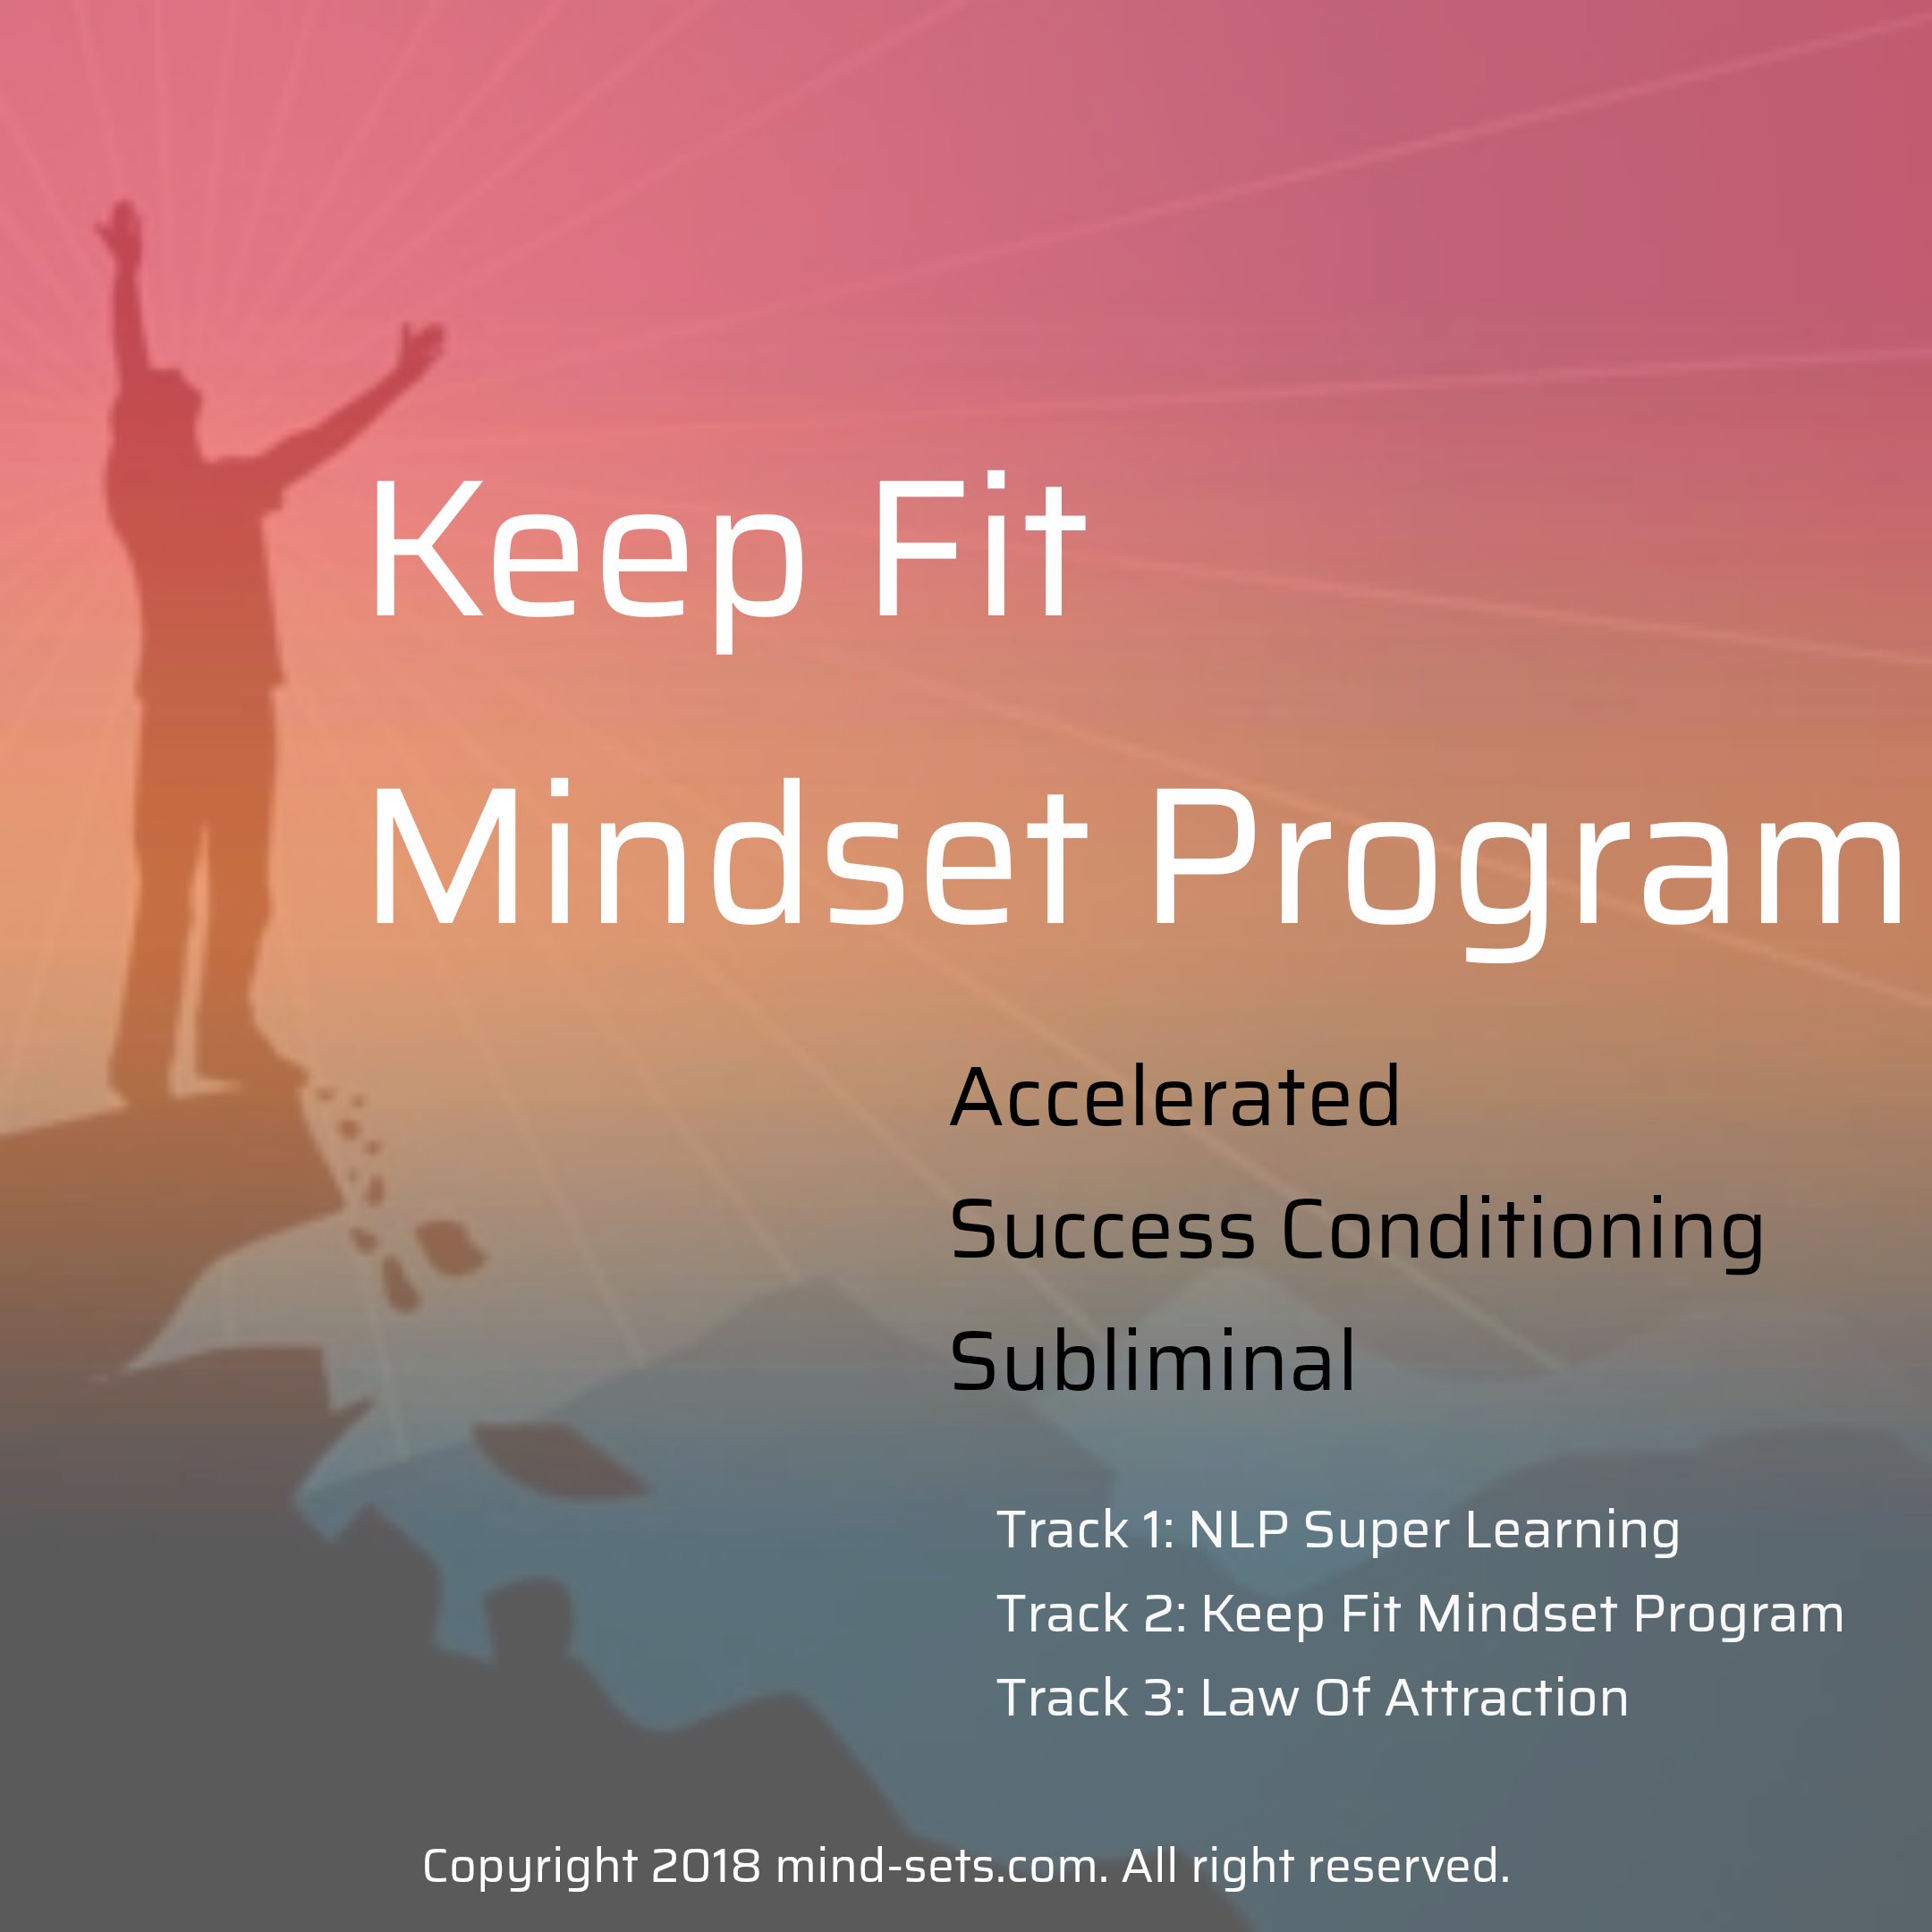 Keep Fit Mindset Program